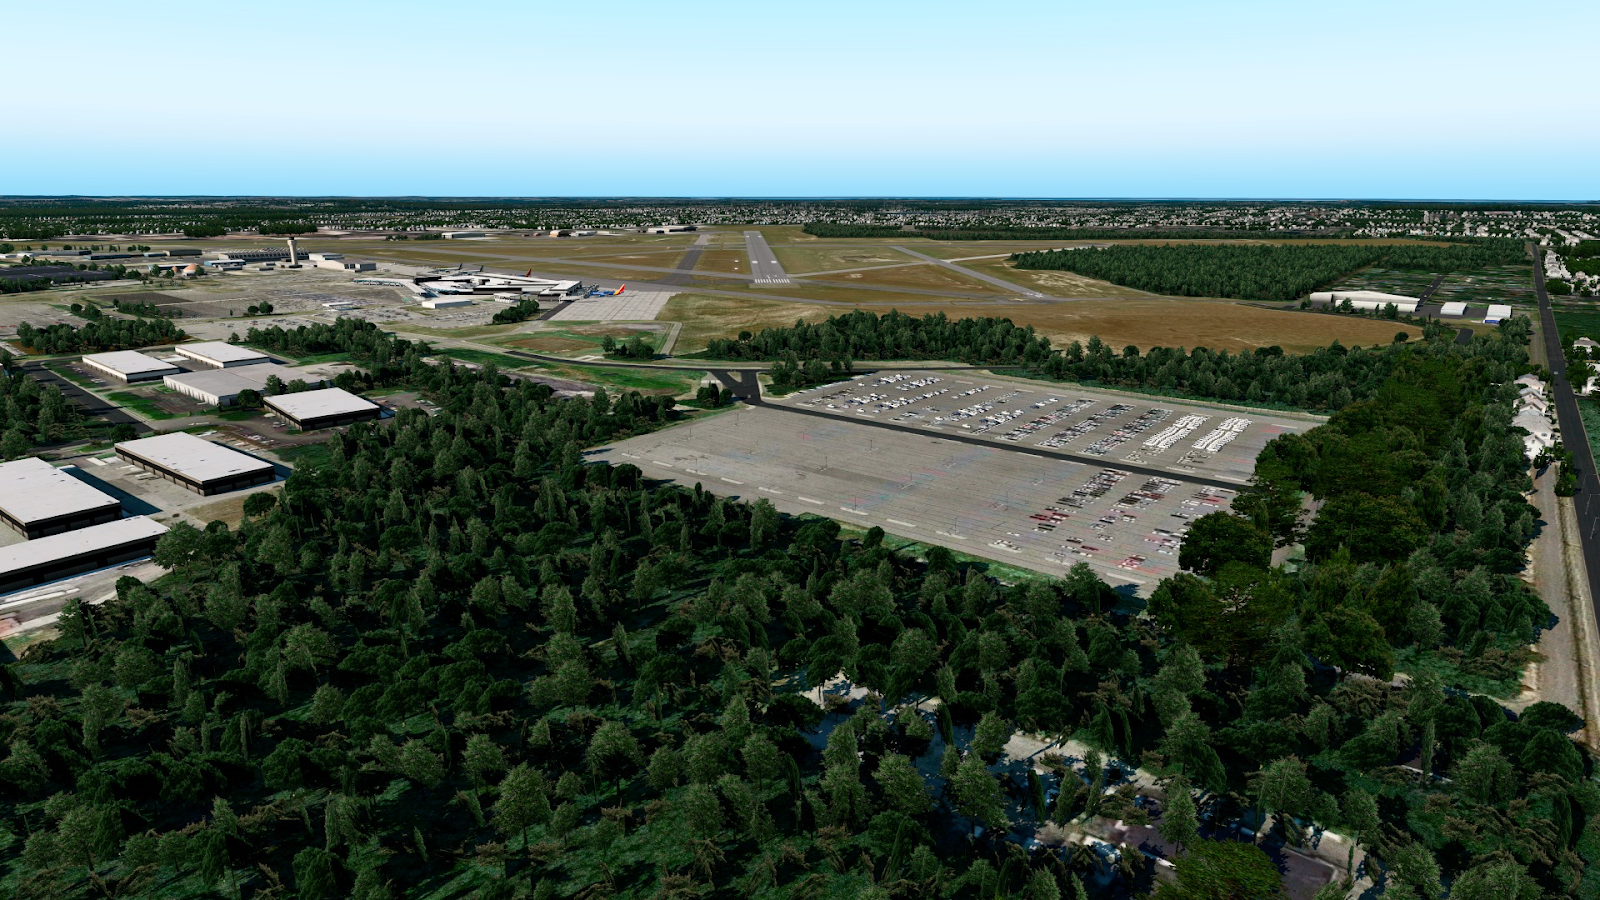 VERTICAL SIMULATIONS - KISP - LONG ISLAND X-PLANE 11